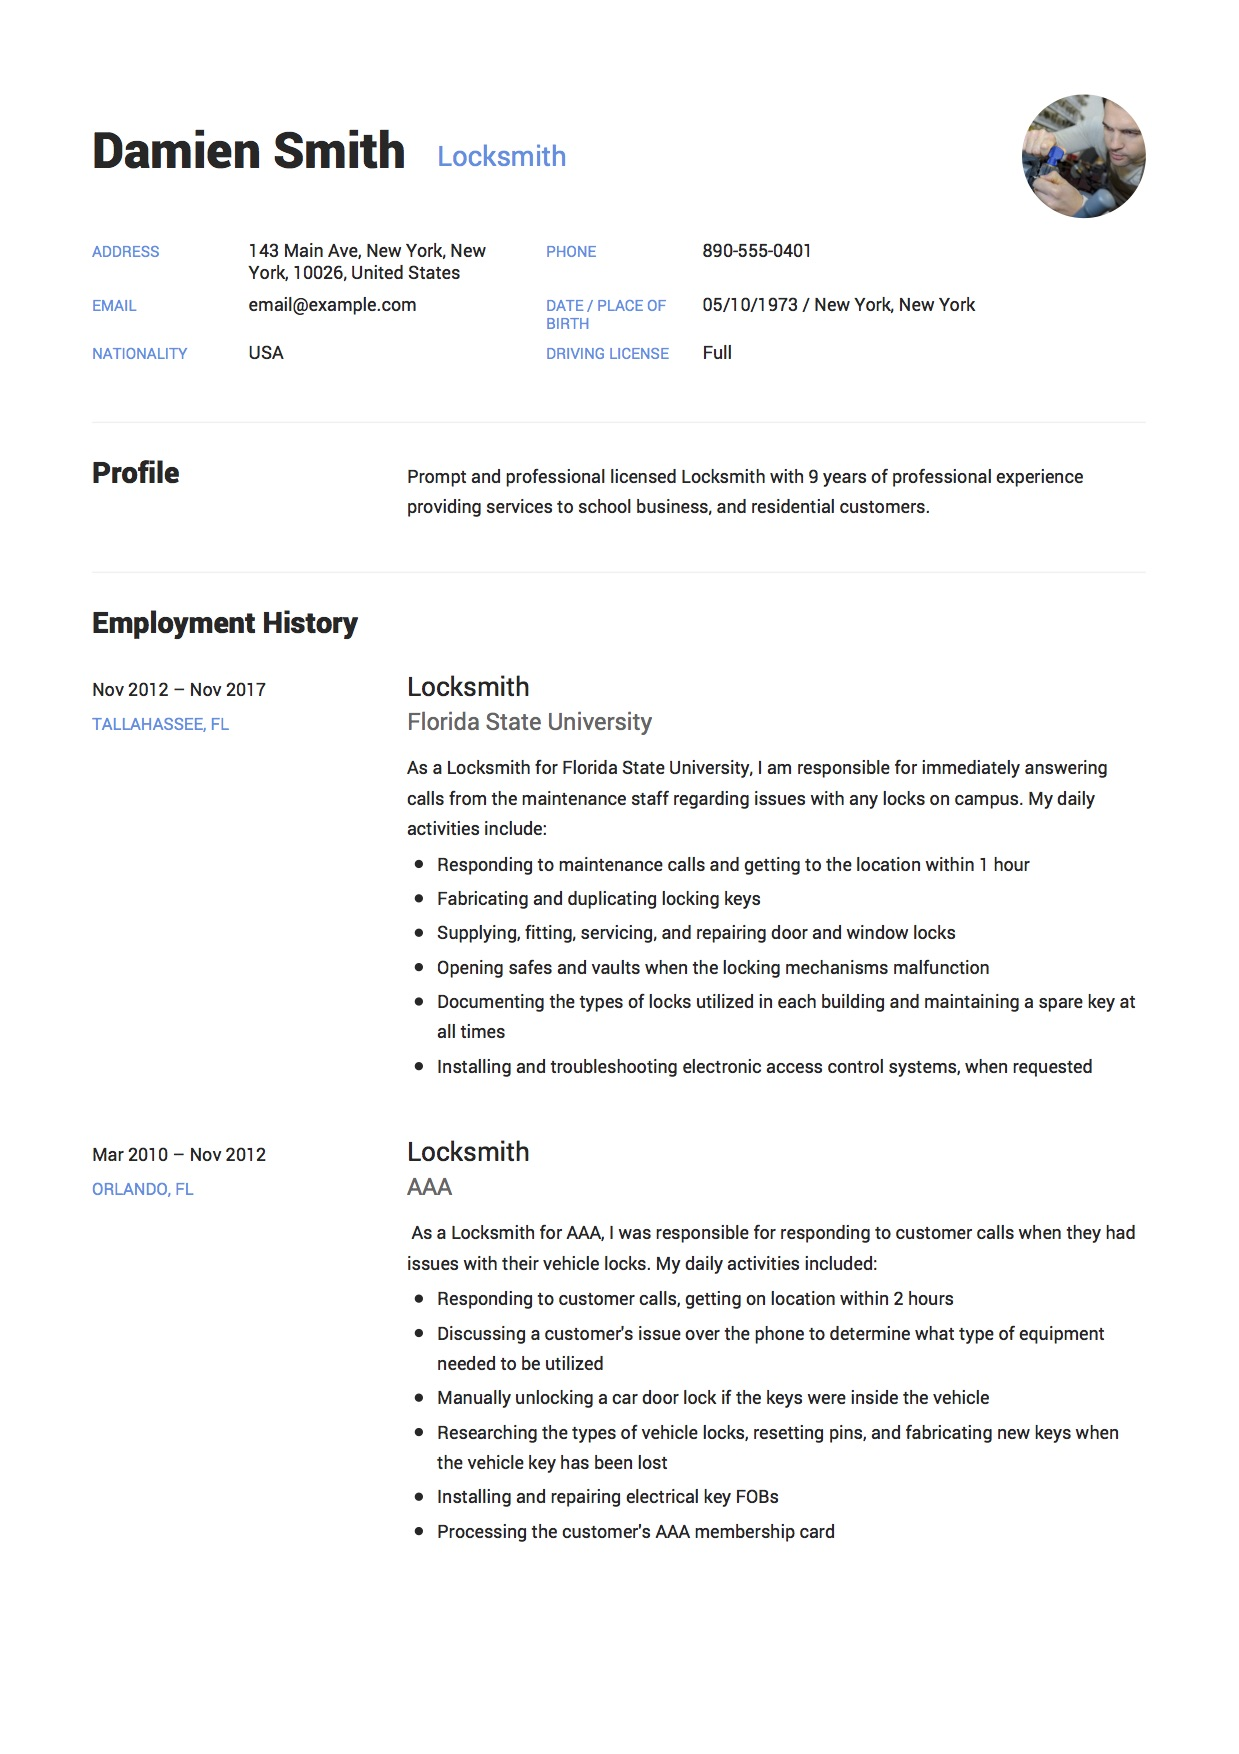 Locksmith Resume with photo